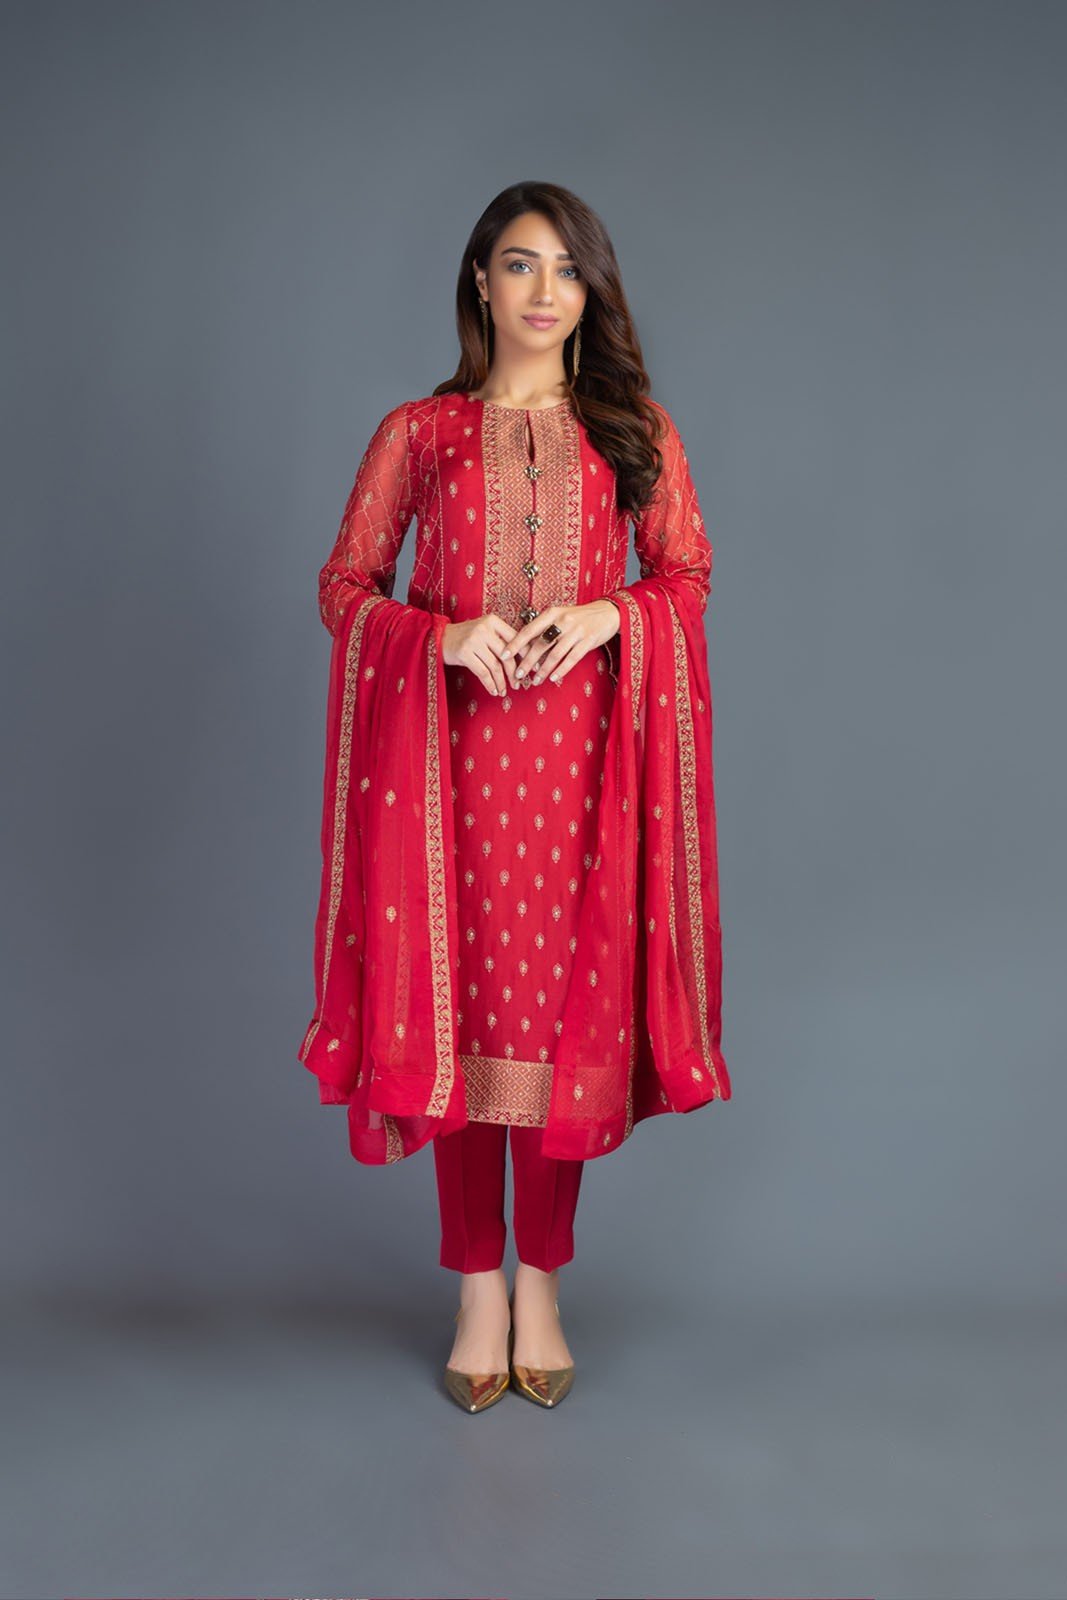 Bareeze Luxury Winter Embroidered Dresses Shawls Designs